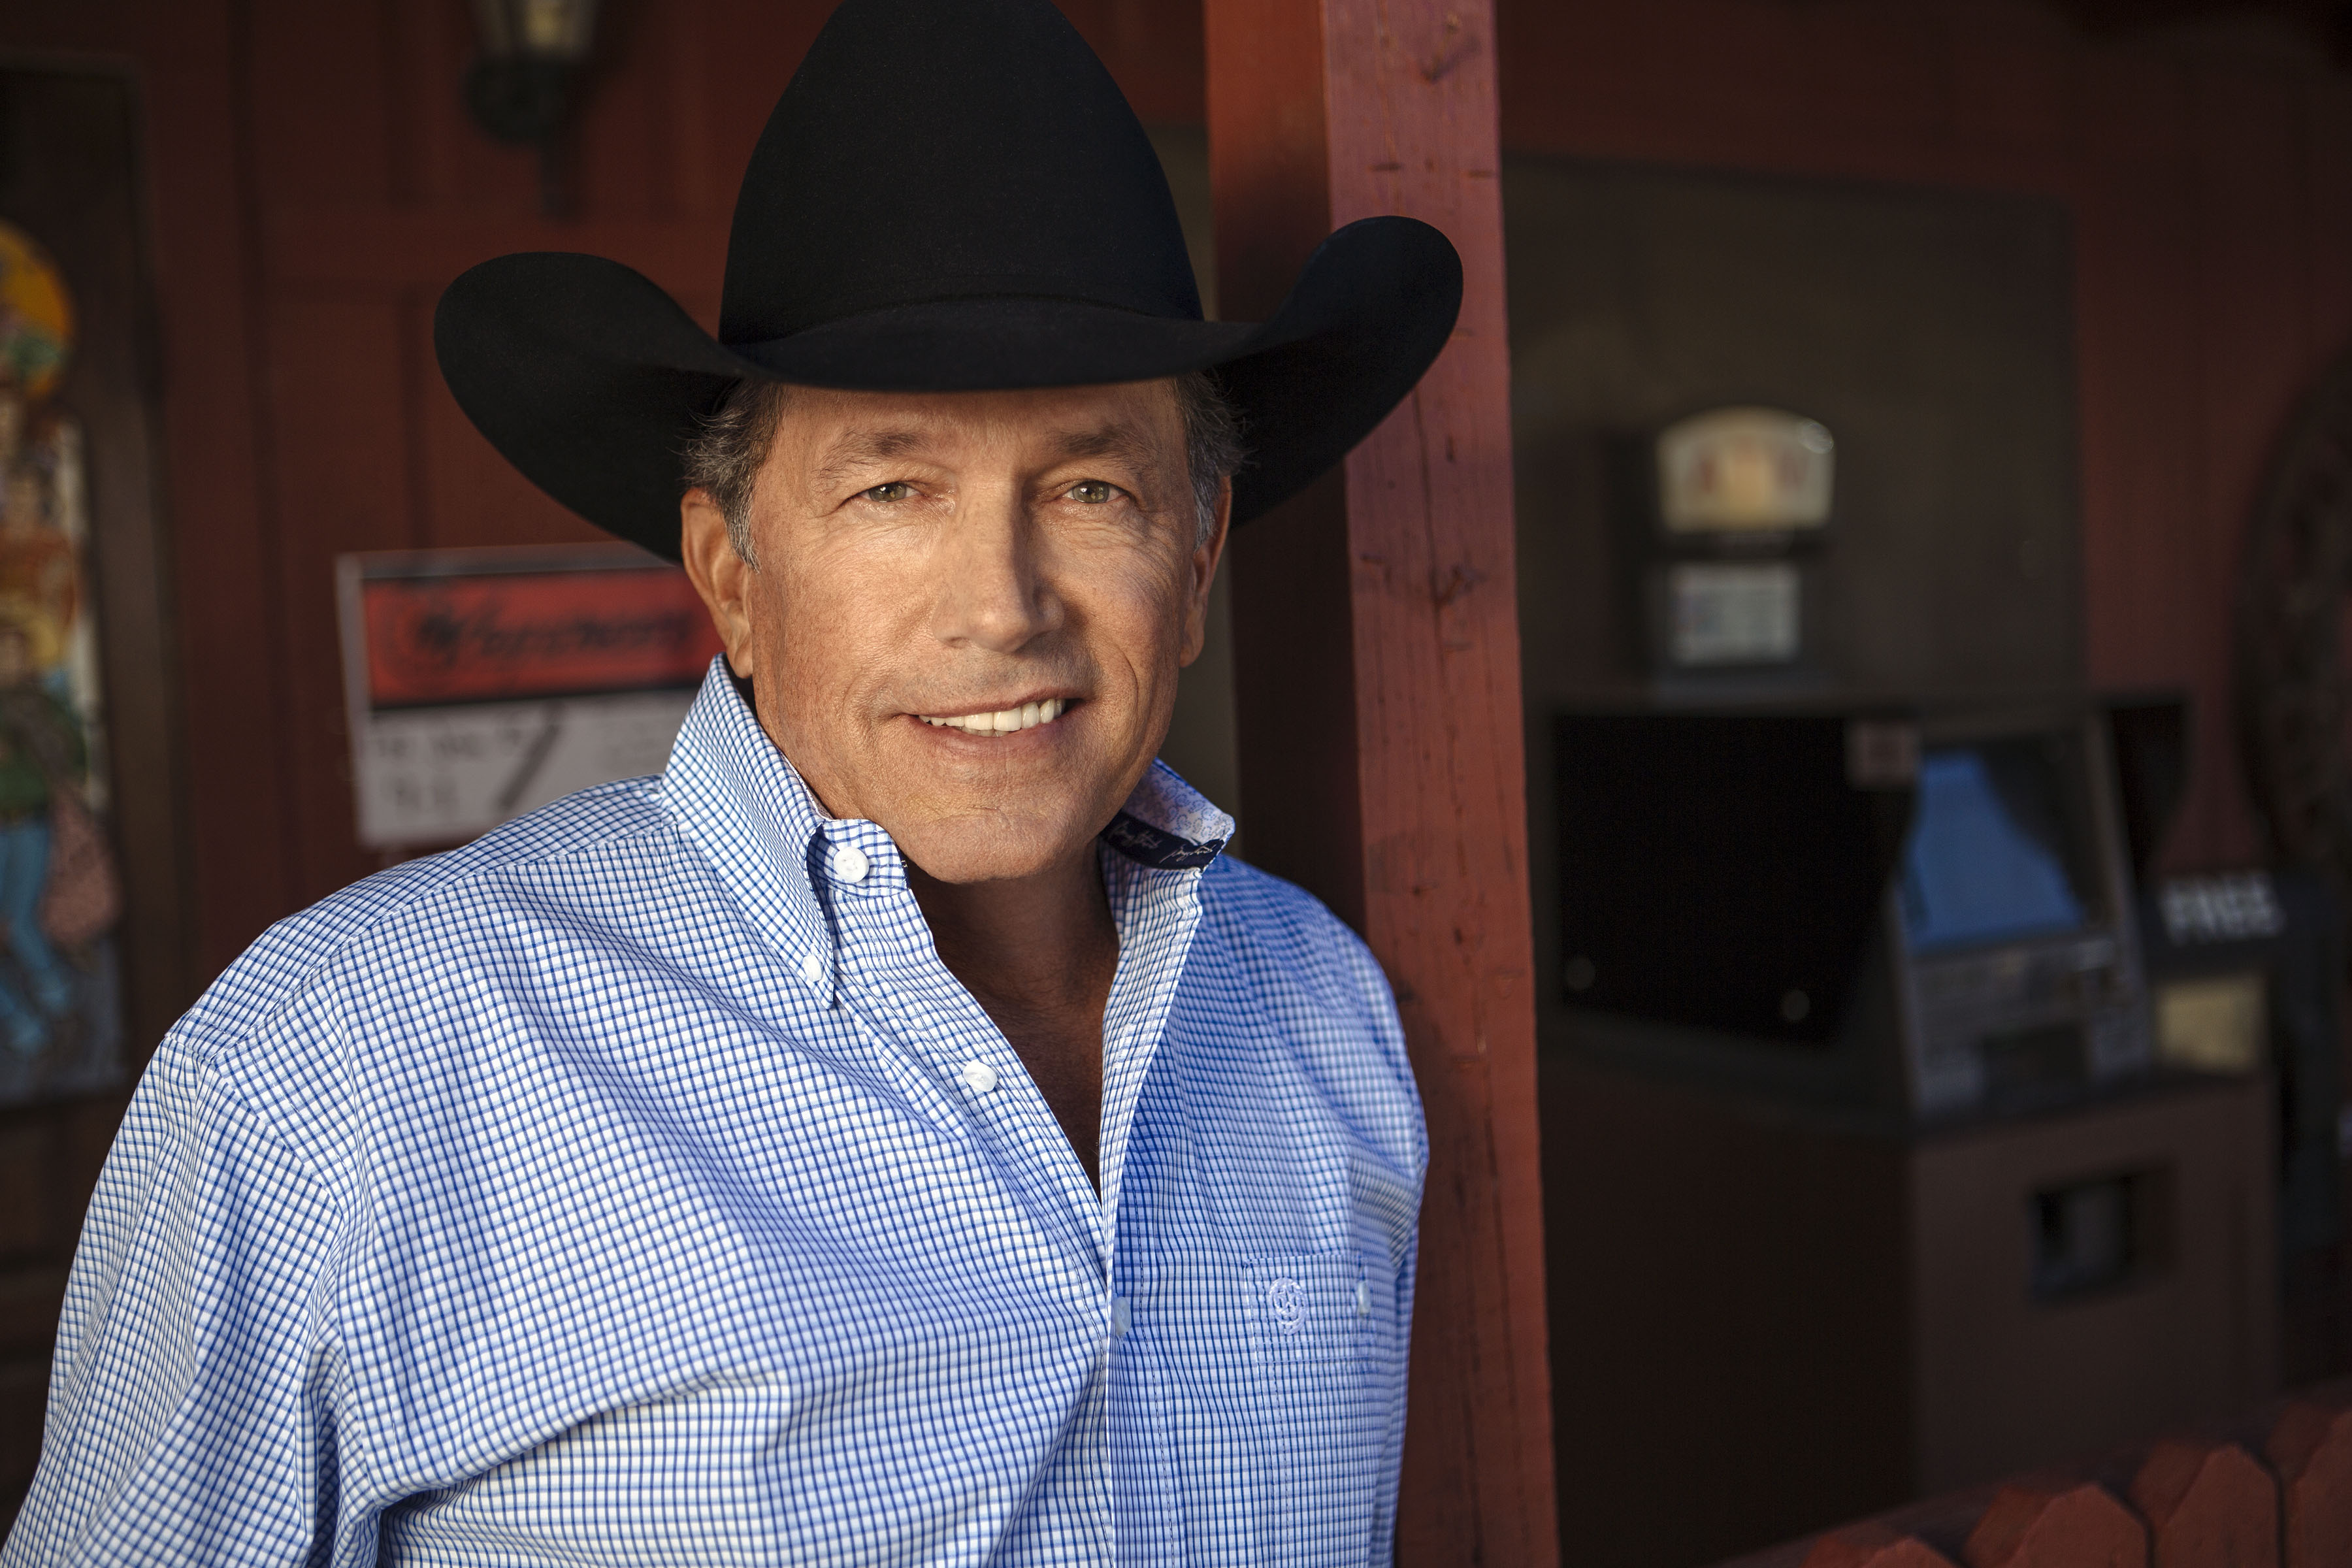 GEORGE STRAIT BRINGS HIS CODIGO TO ALL 50 STATES.